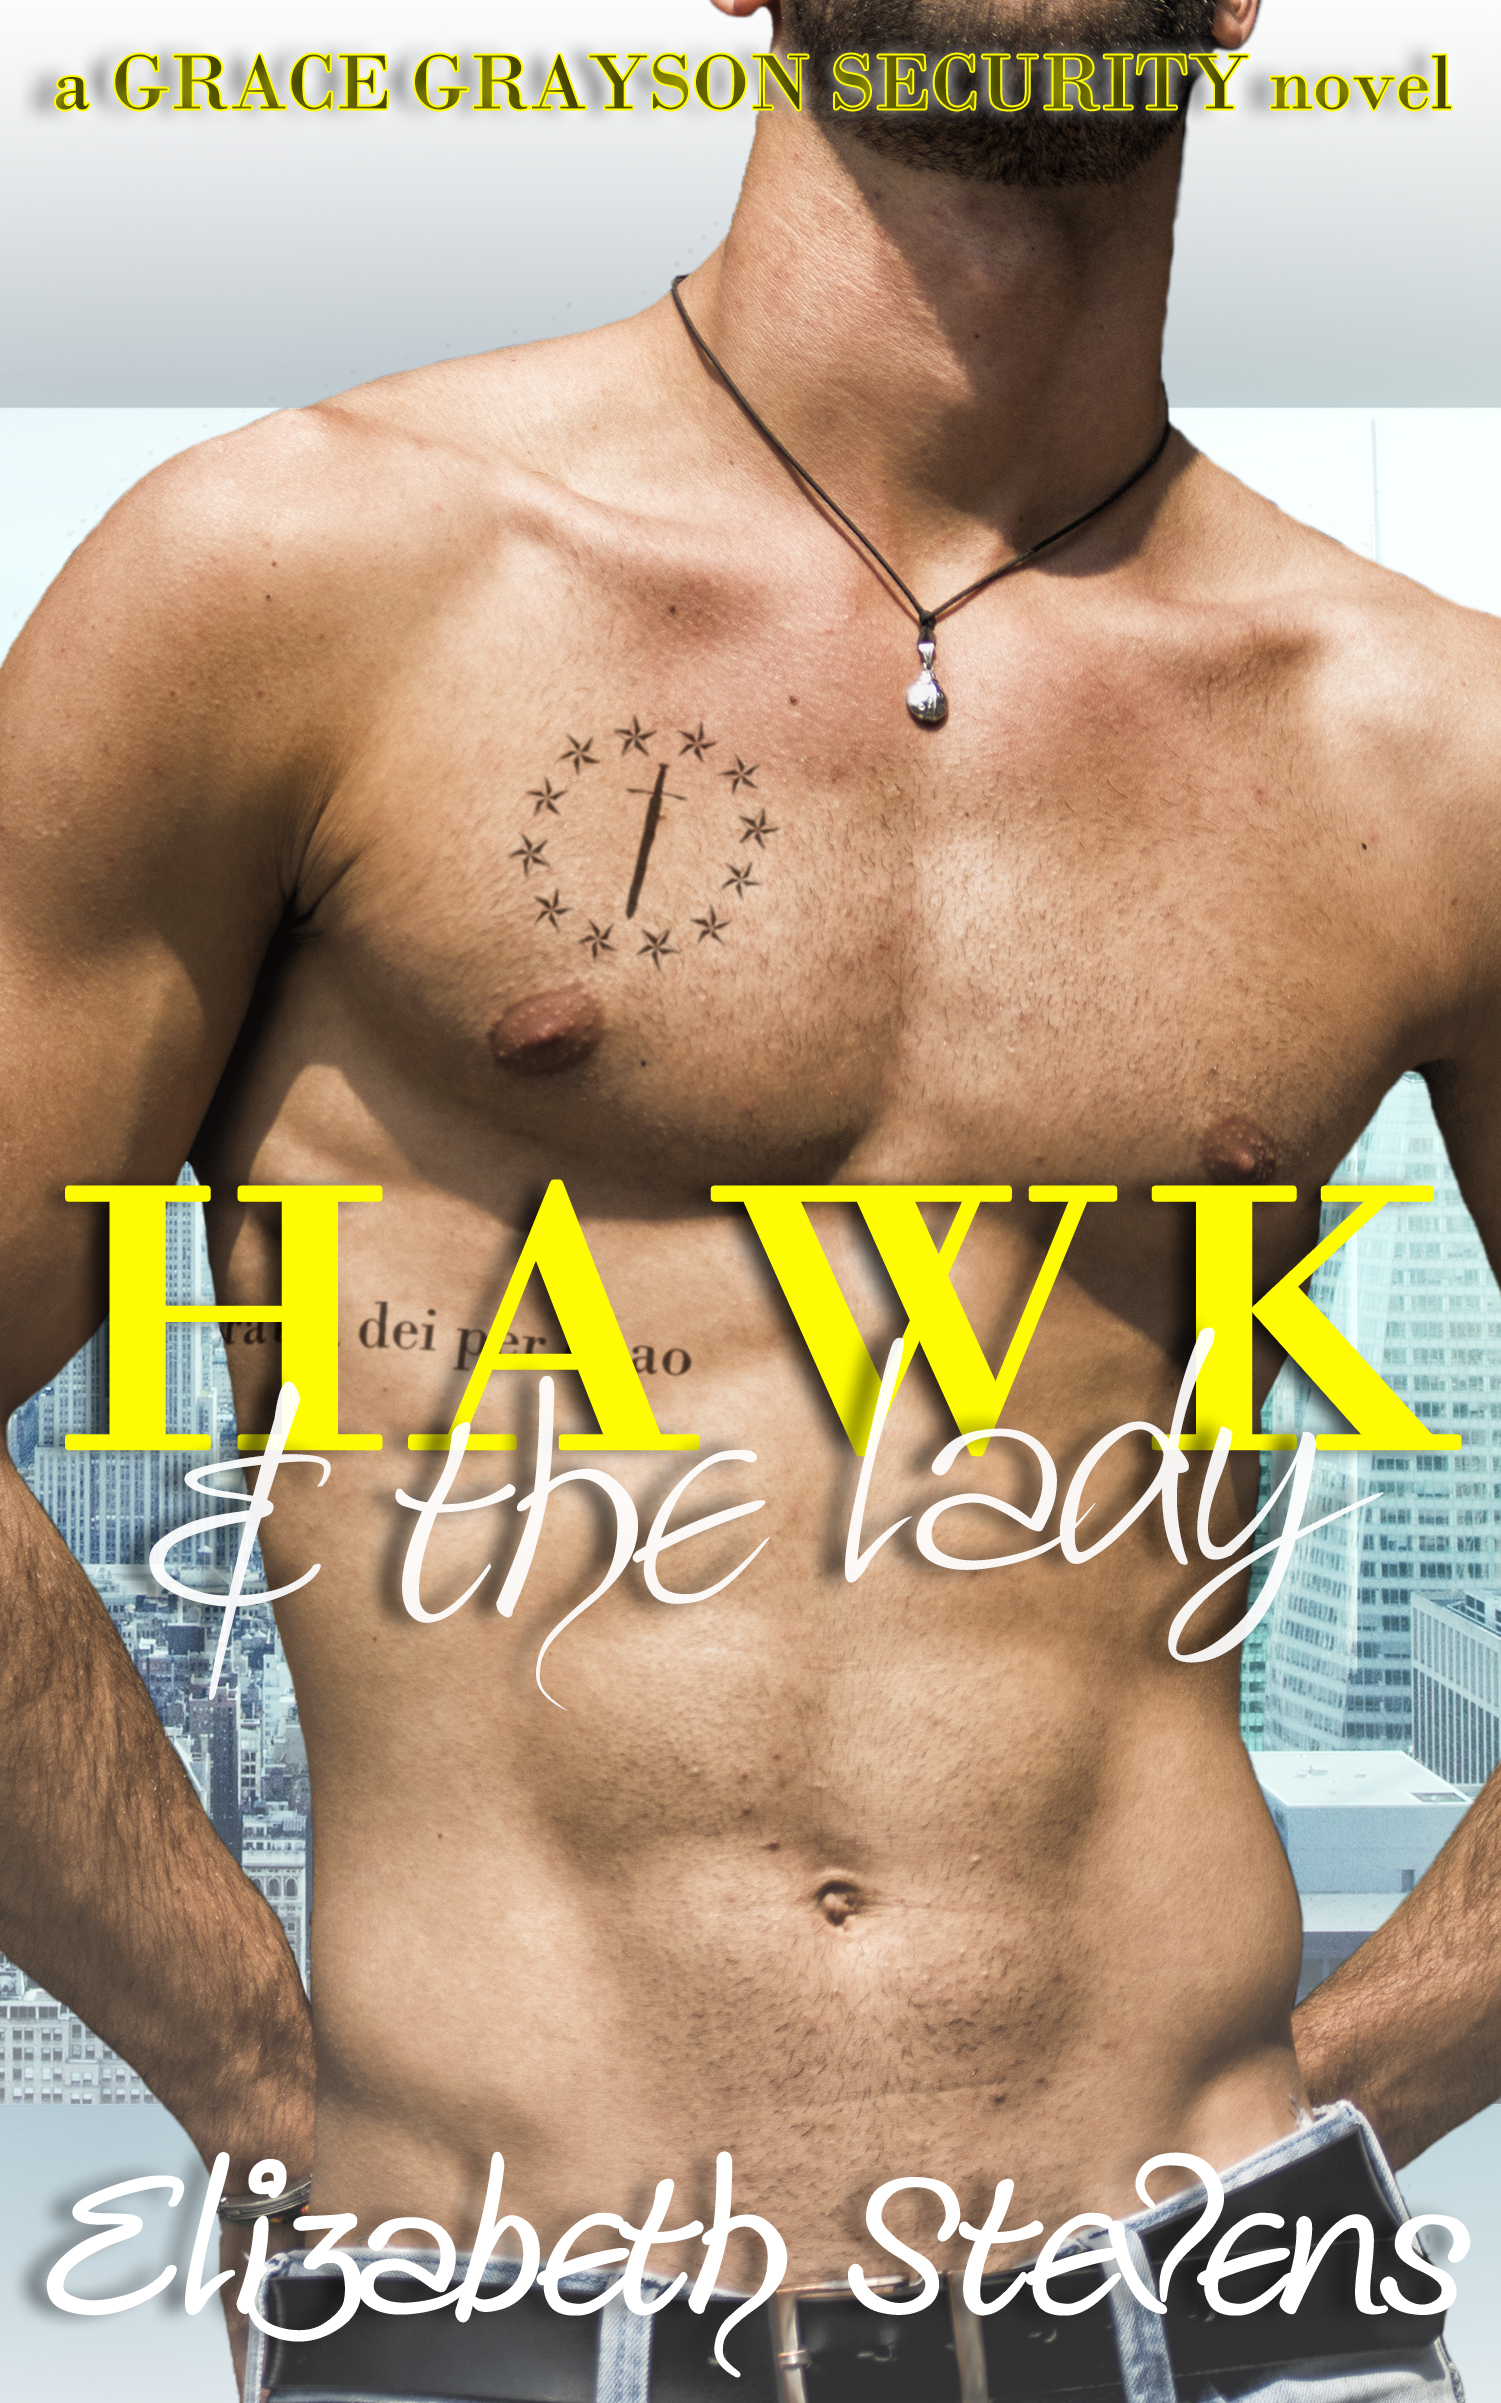 Hawk & the Lady (Grace Grayson Security, #2)